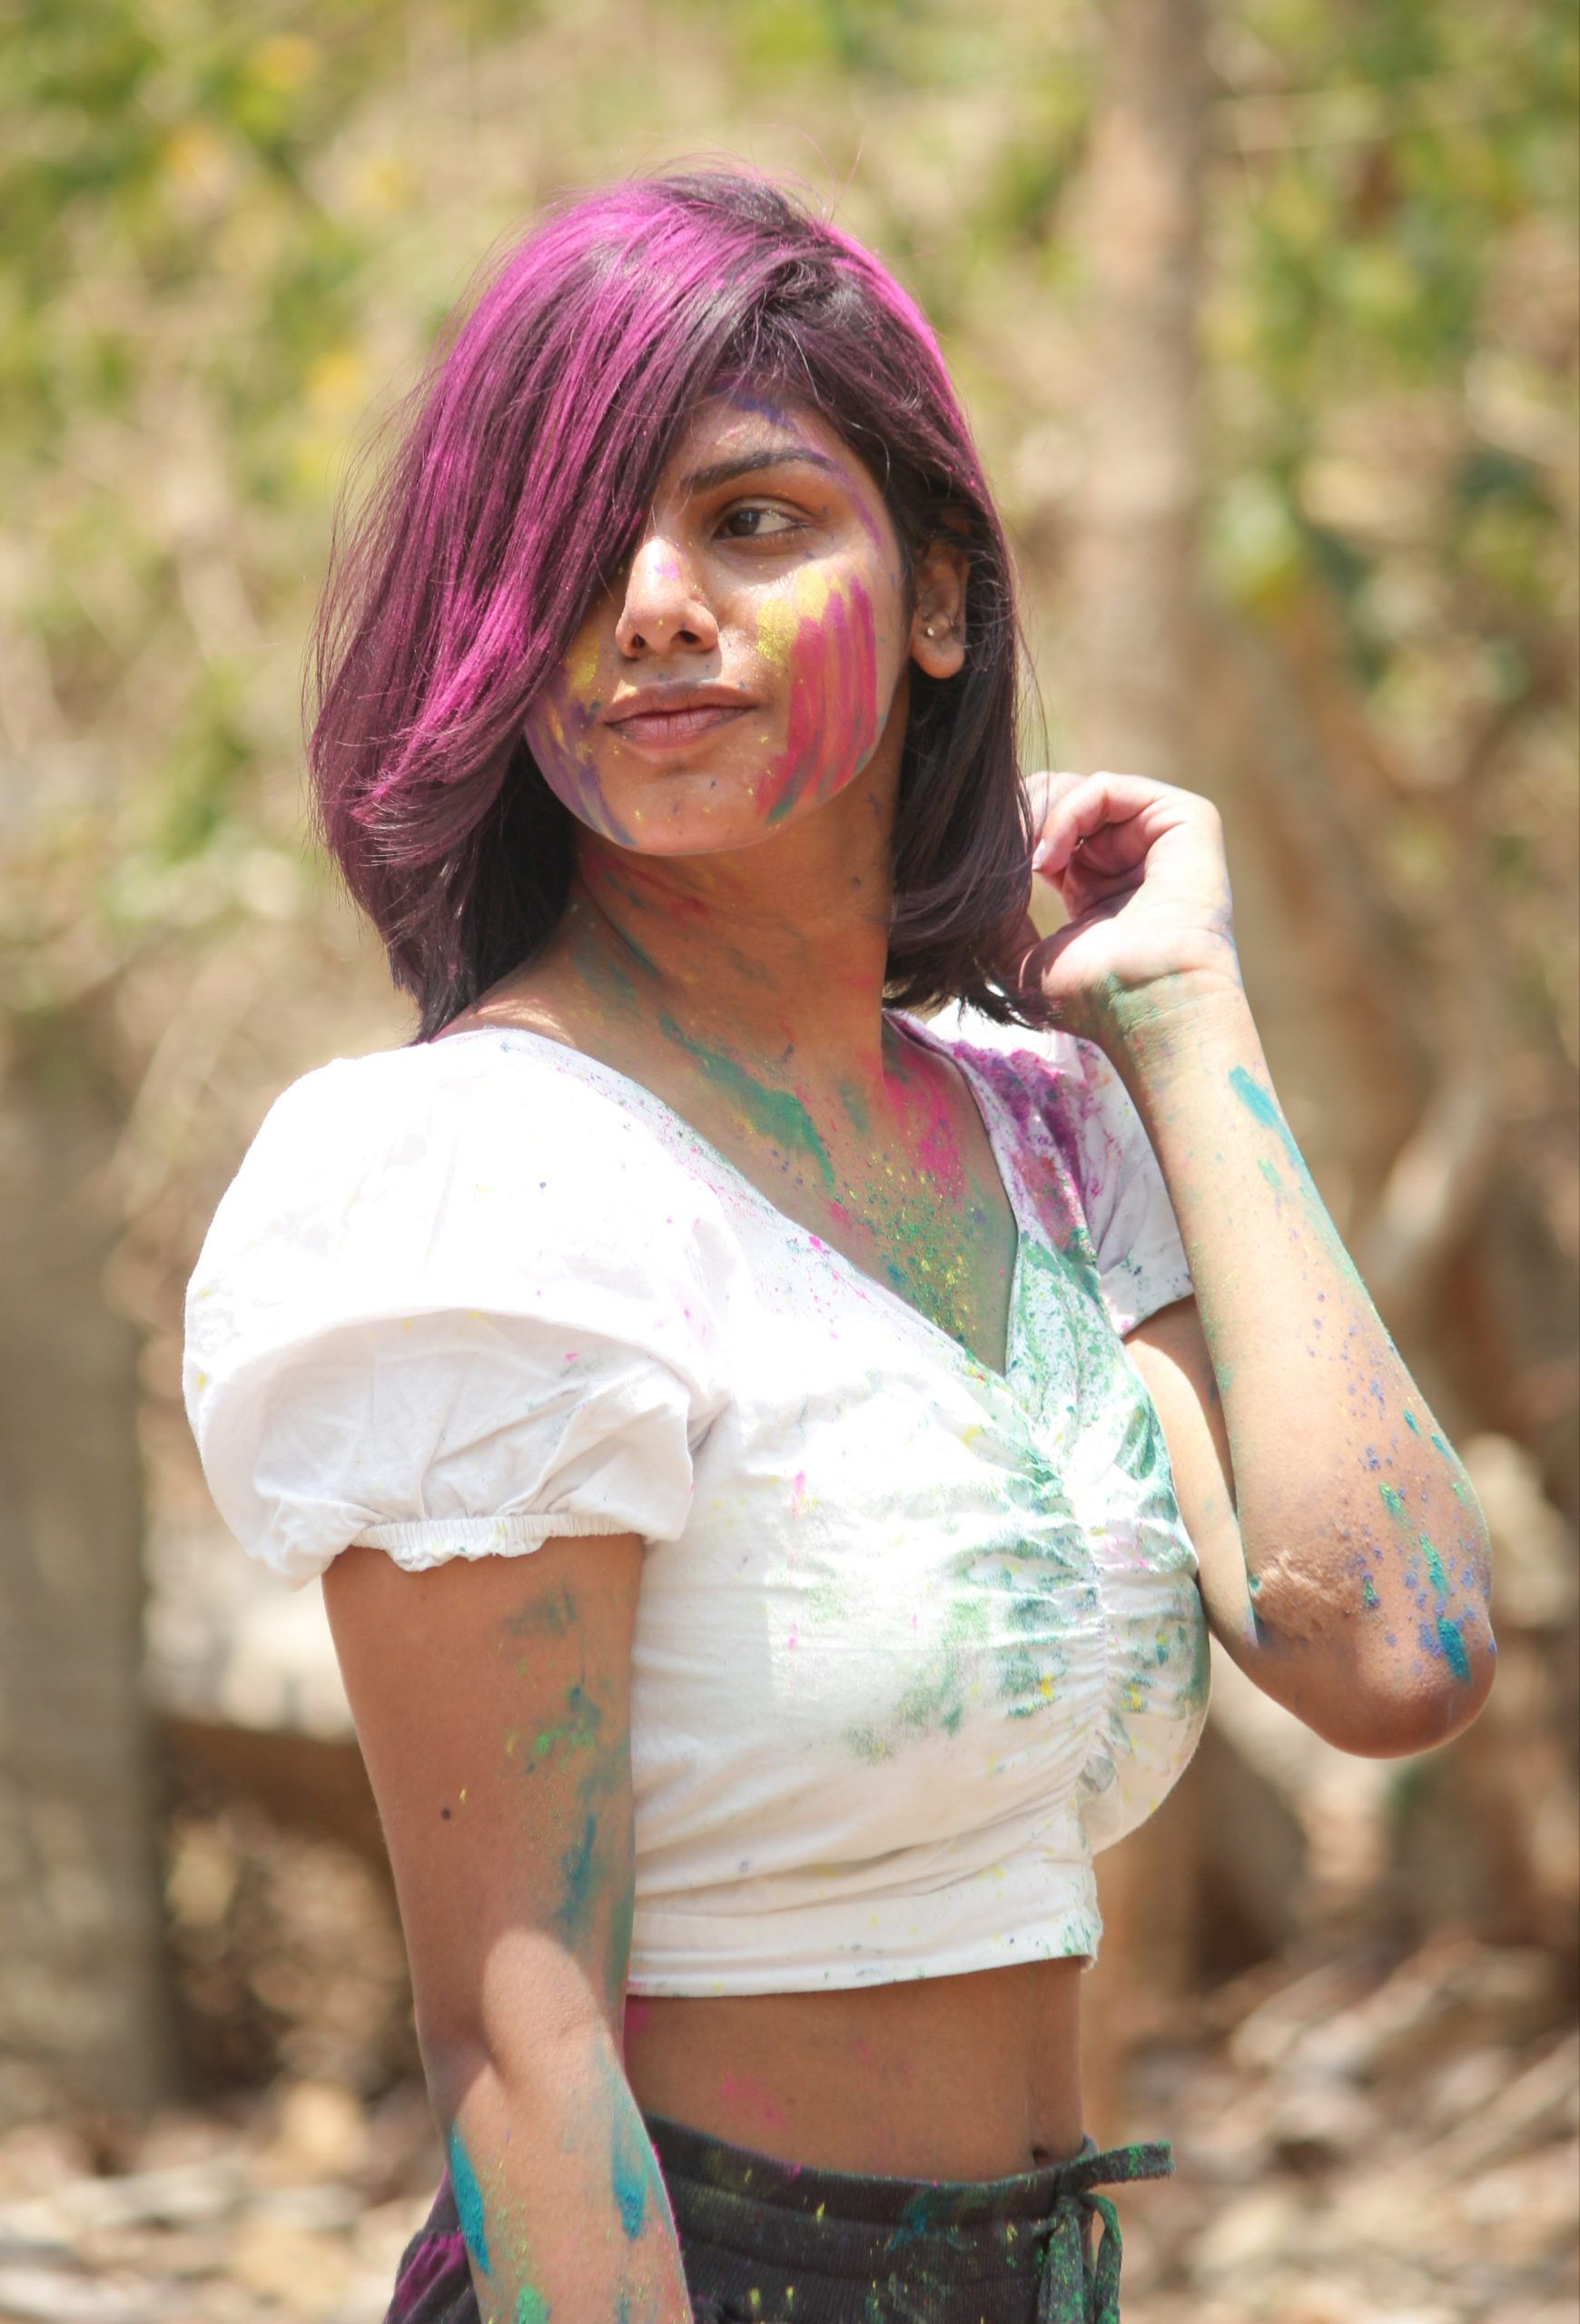 Holi colors on beautiful Girl's hair and face